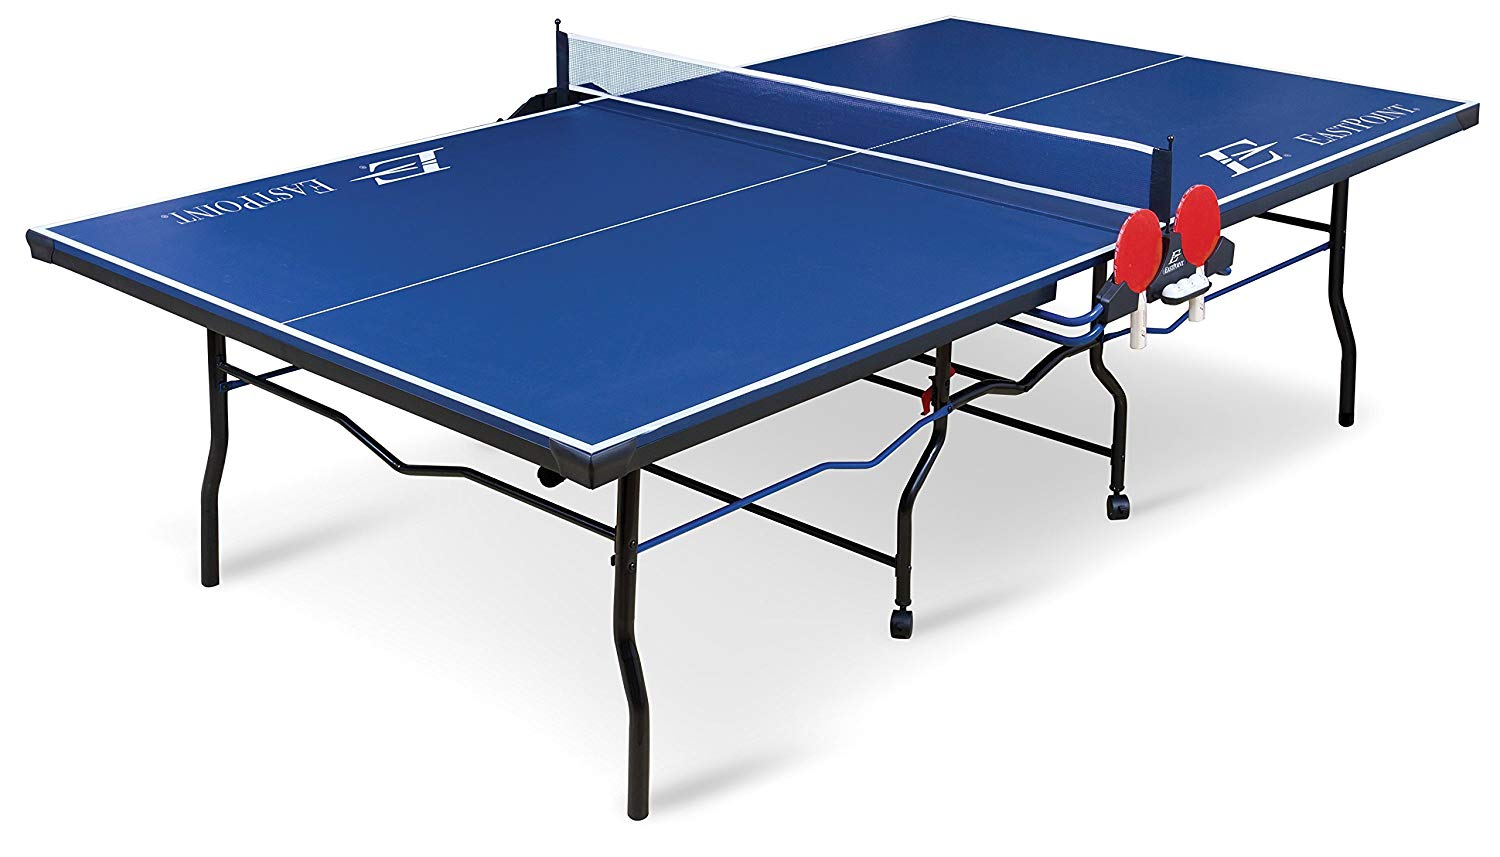 Enjoyable 5 Best Budget Friendly Ping Pong Tables Under 300 2019 Review Home Interior And Landscaping Oversignezvosmurscom